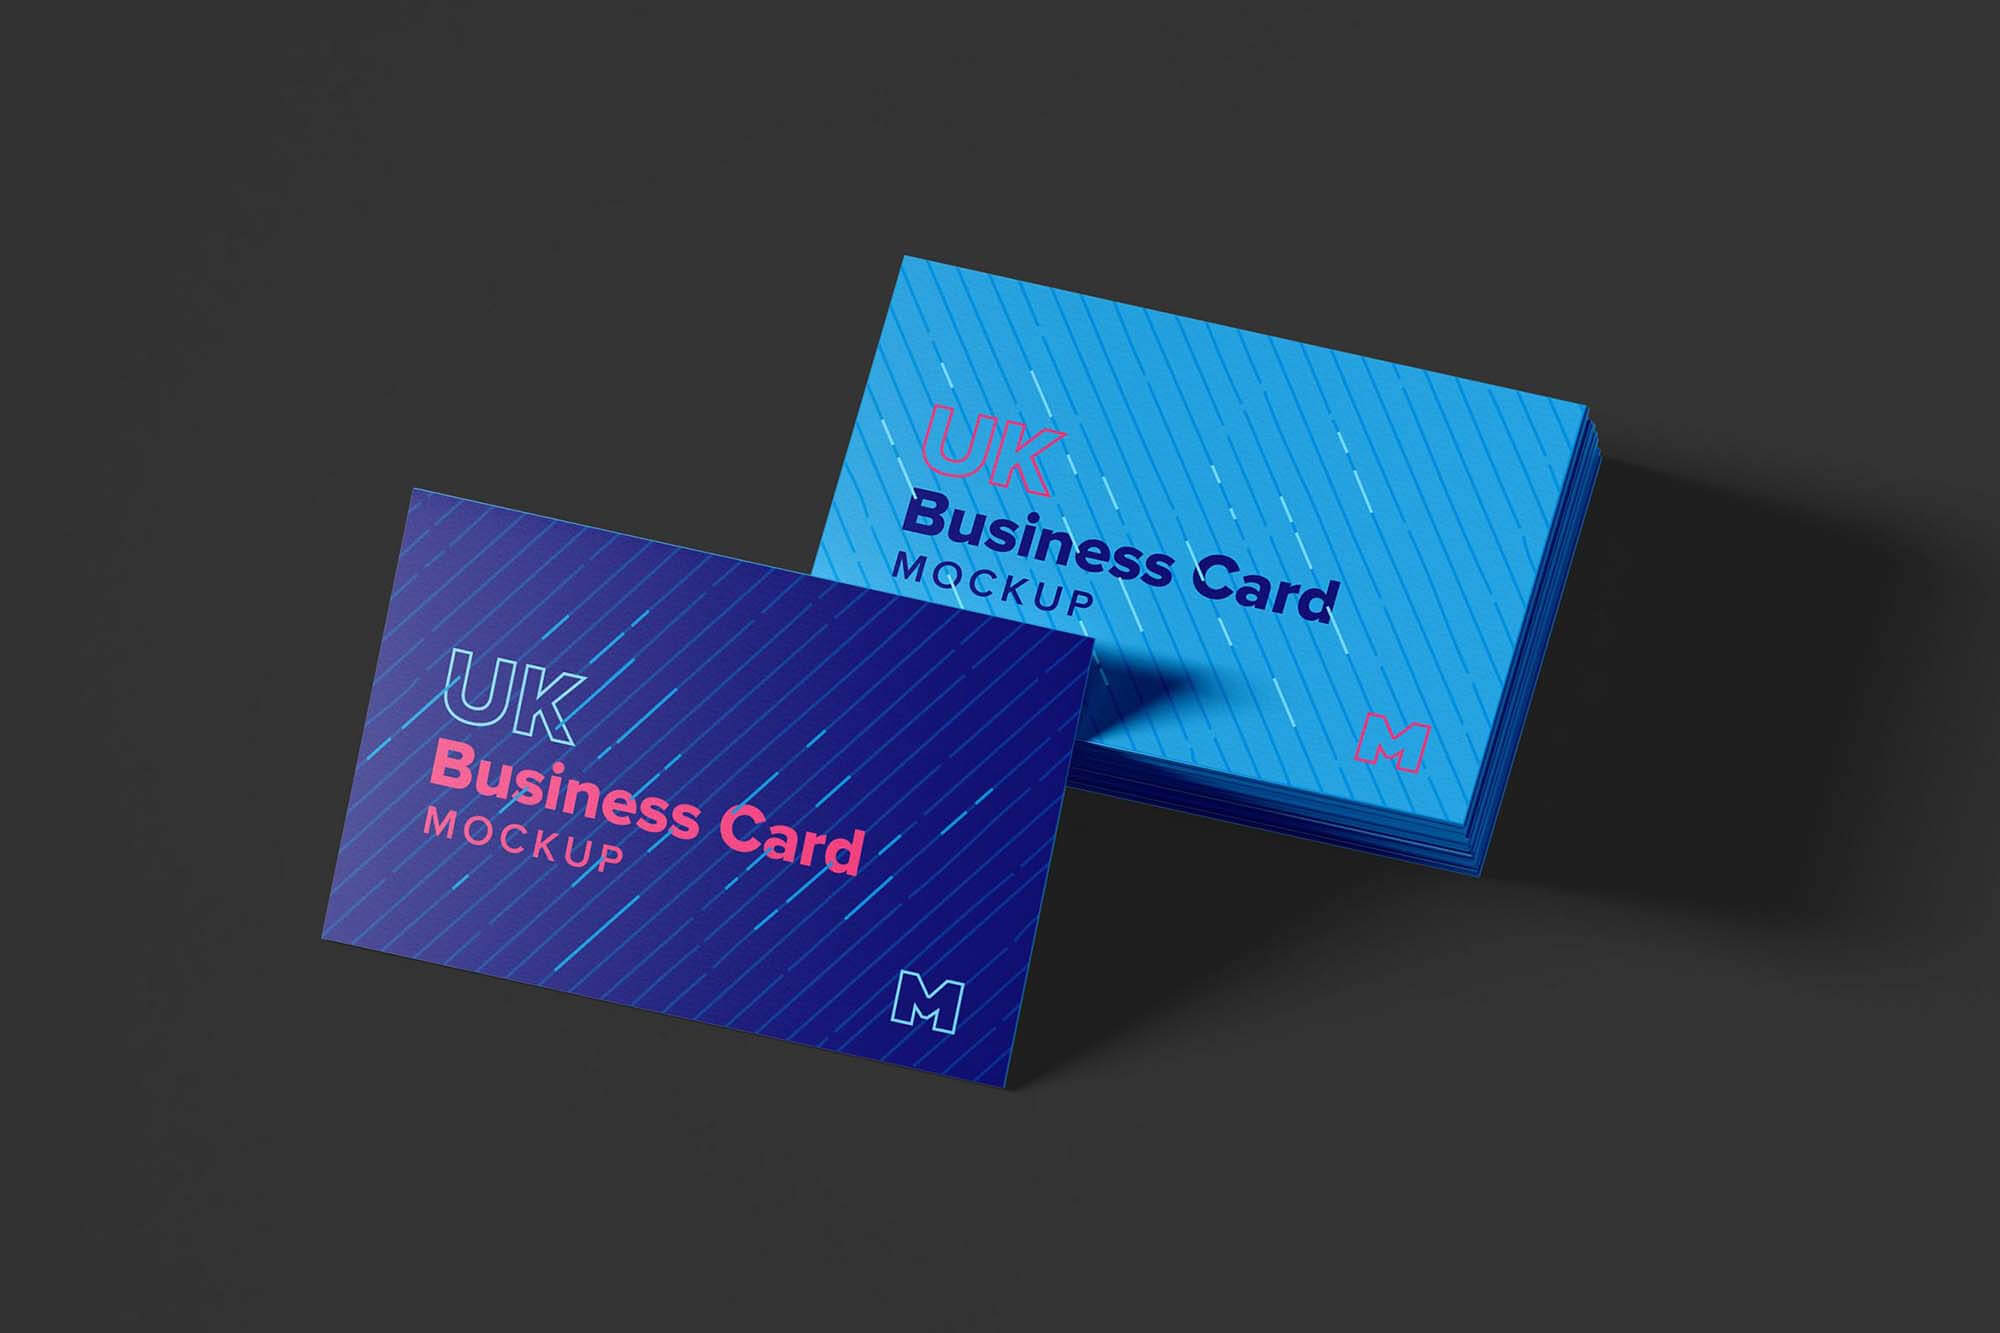 Free Uk Business Cards Mockup (Psd) Inside 8 5X 11 Business Card Template